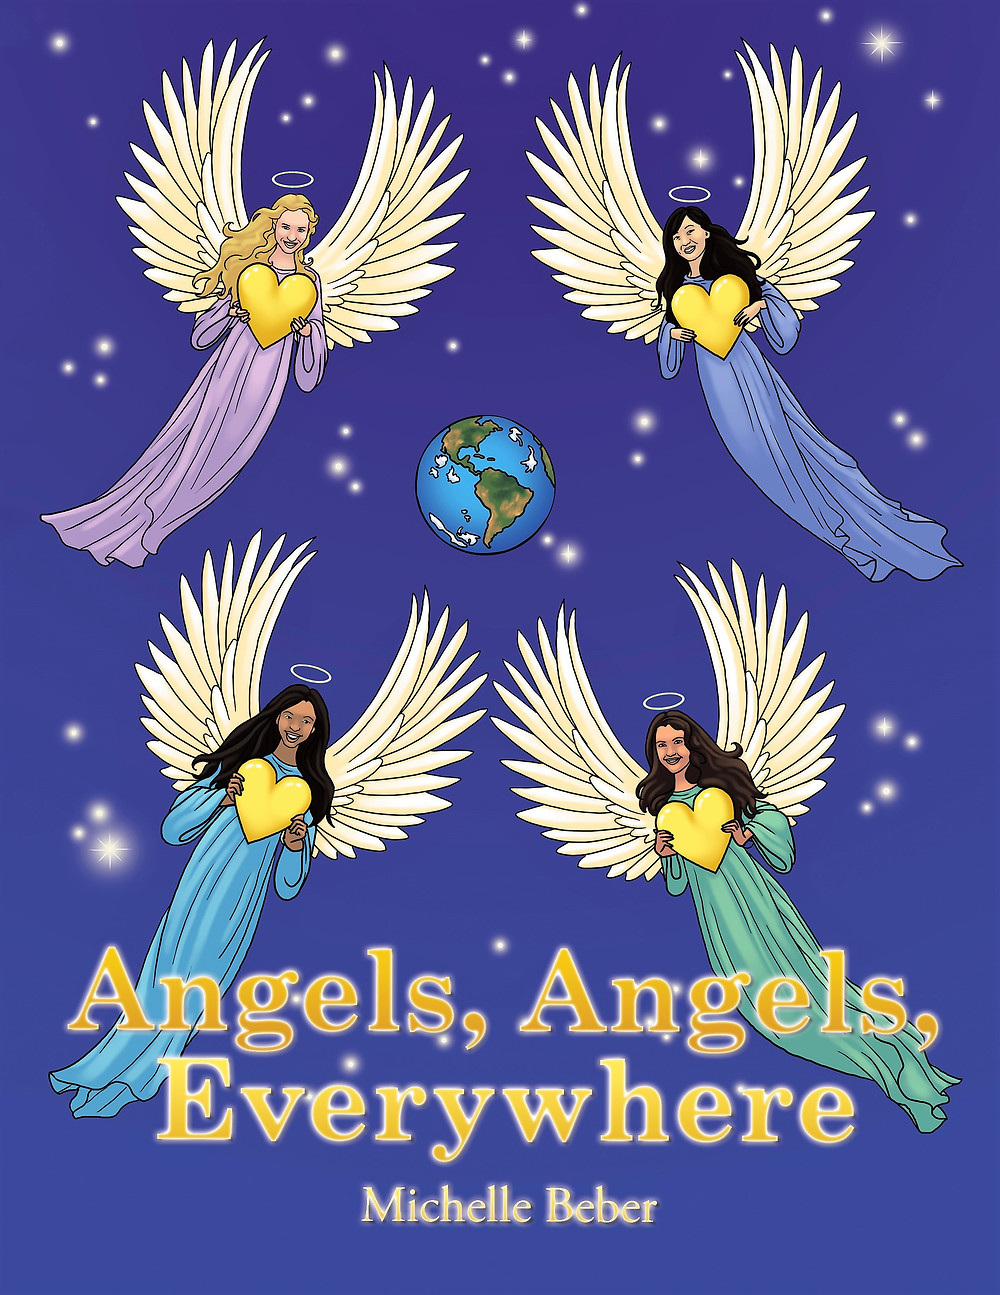 Angels, Angels, Everywhere - The Culture News